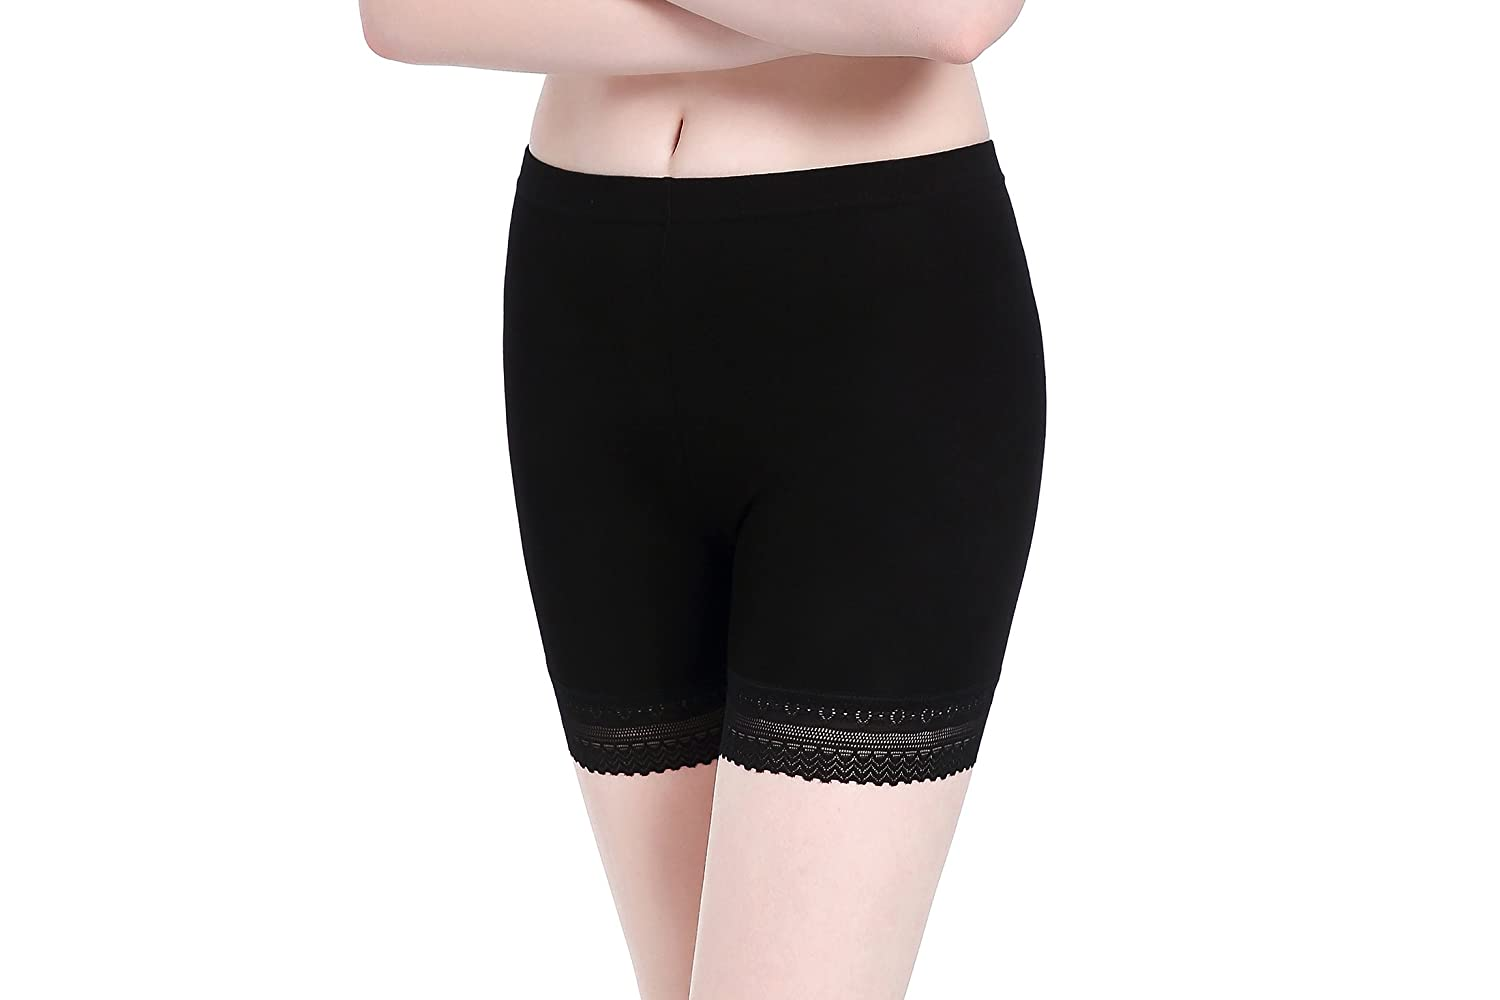 CnlanRow Womens Lace Short Skirts Safety Pants Leggings Stretchy Ultra Thin Workout Athletic Leggings for Women 2003